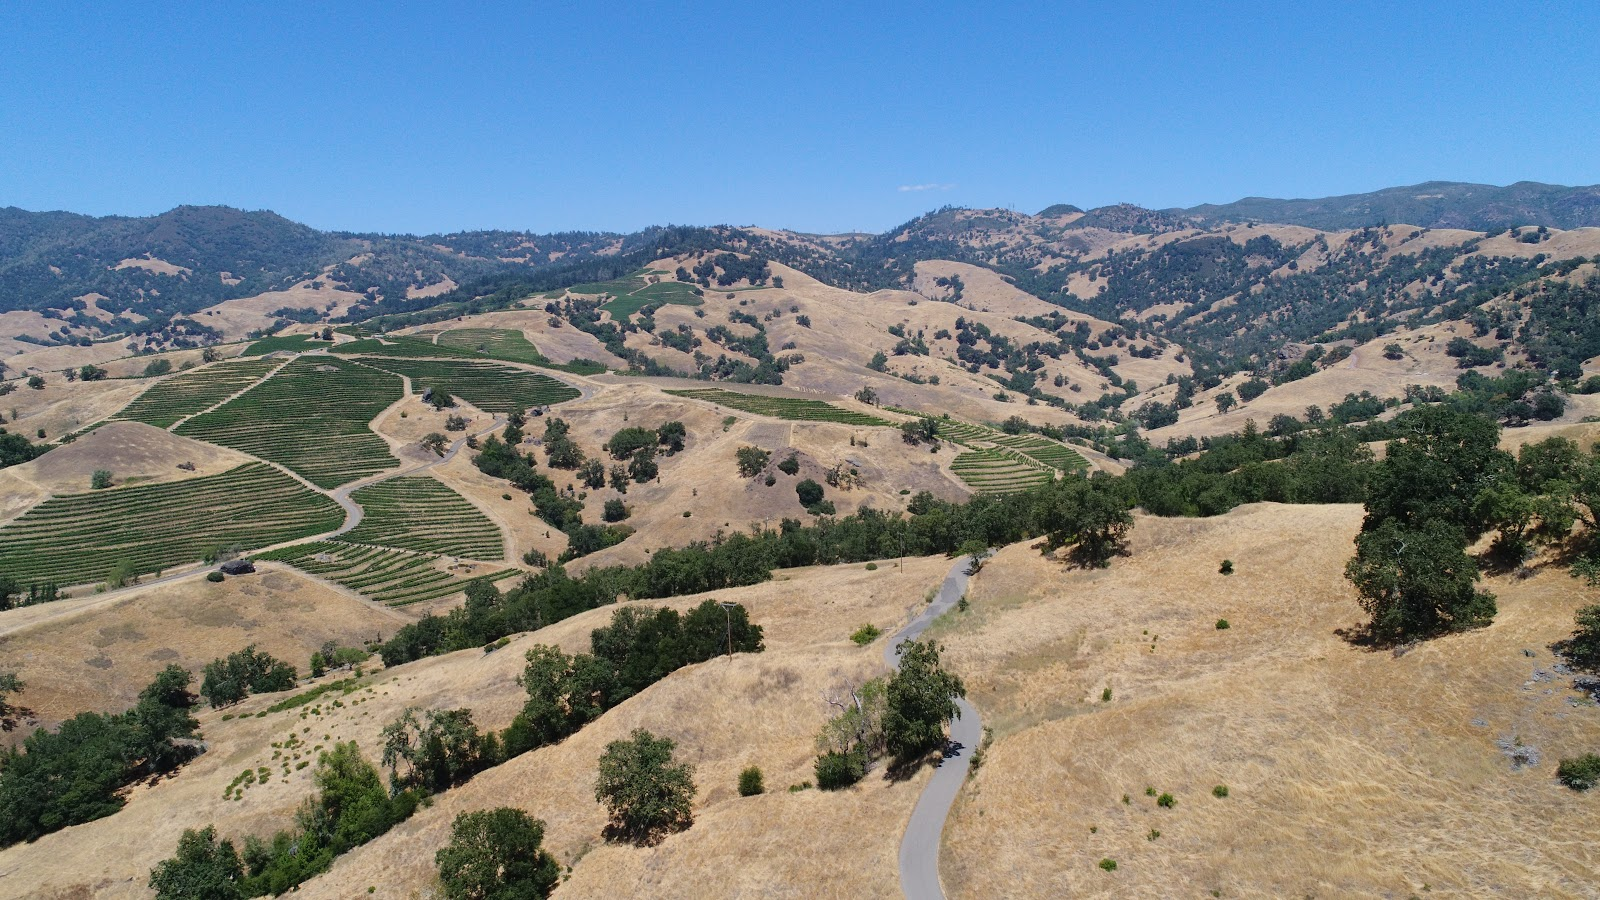 Climbing Pine Flat Road by bike - aerial drone photo of roadway, hillside, mountains and vineyards.